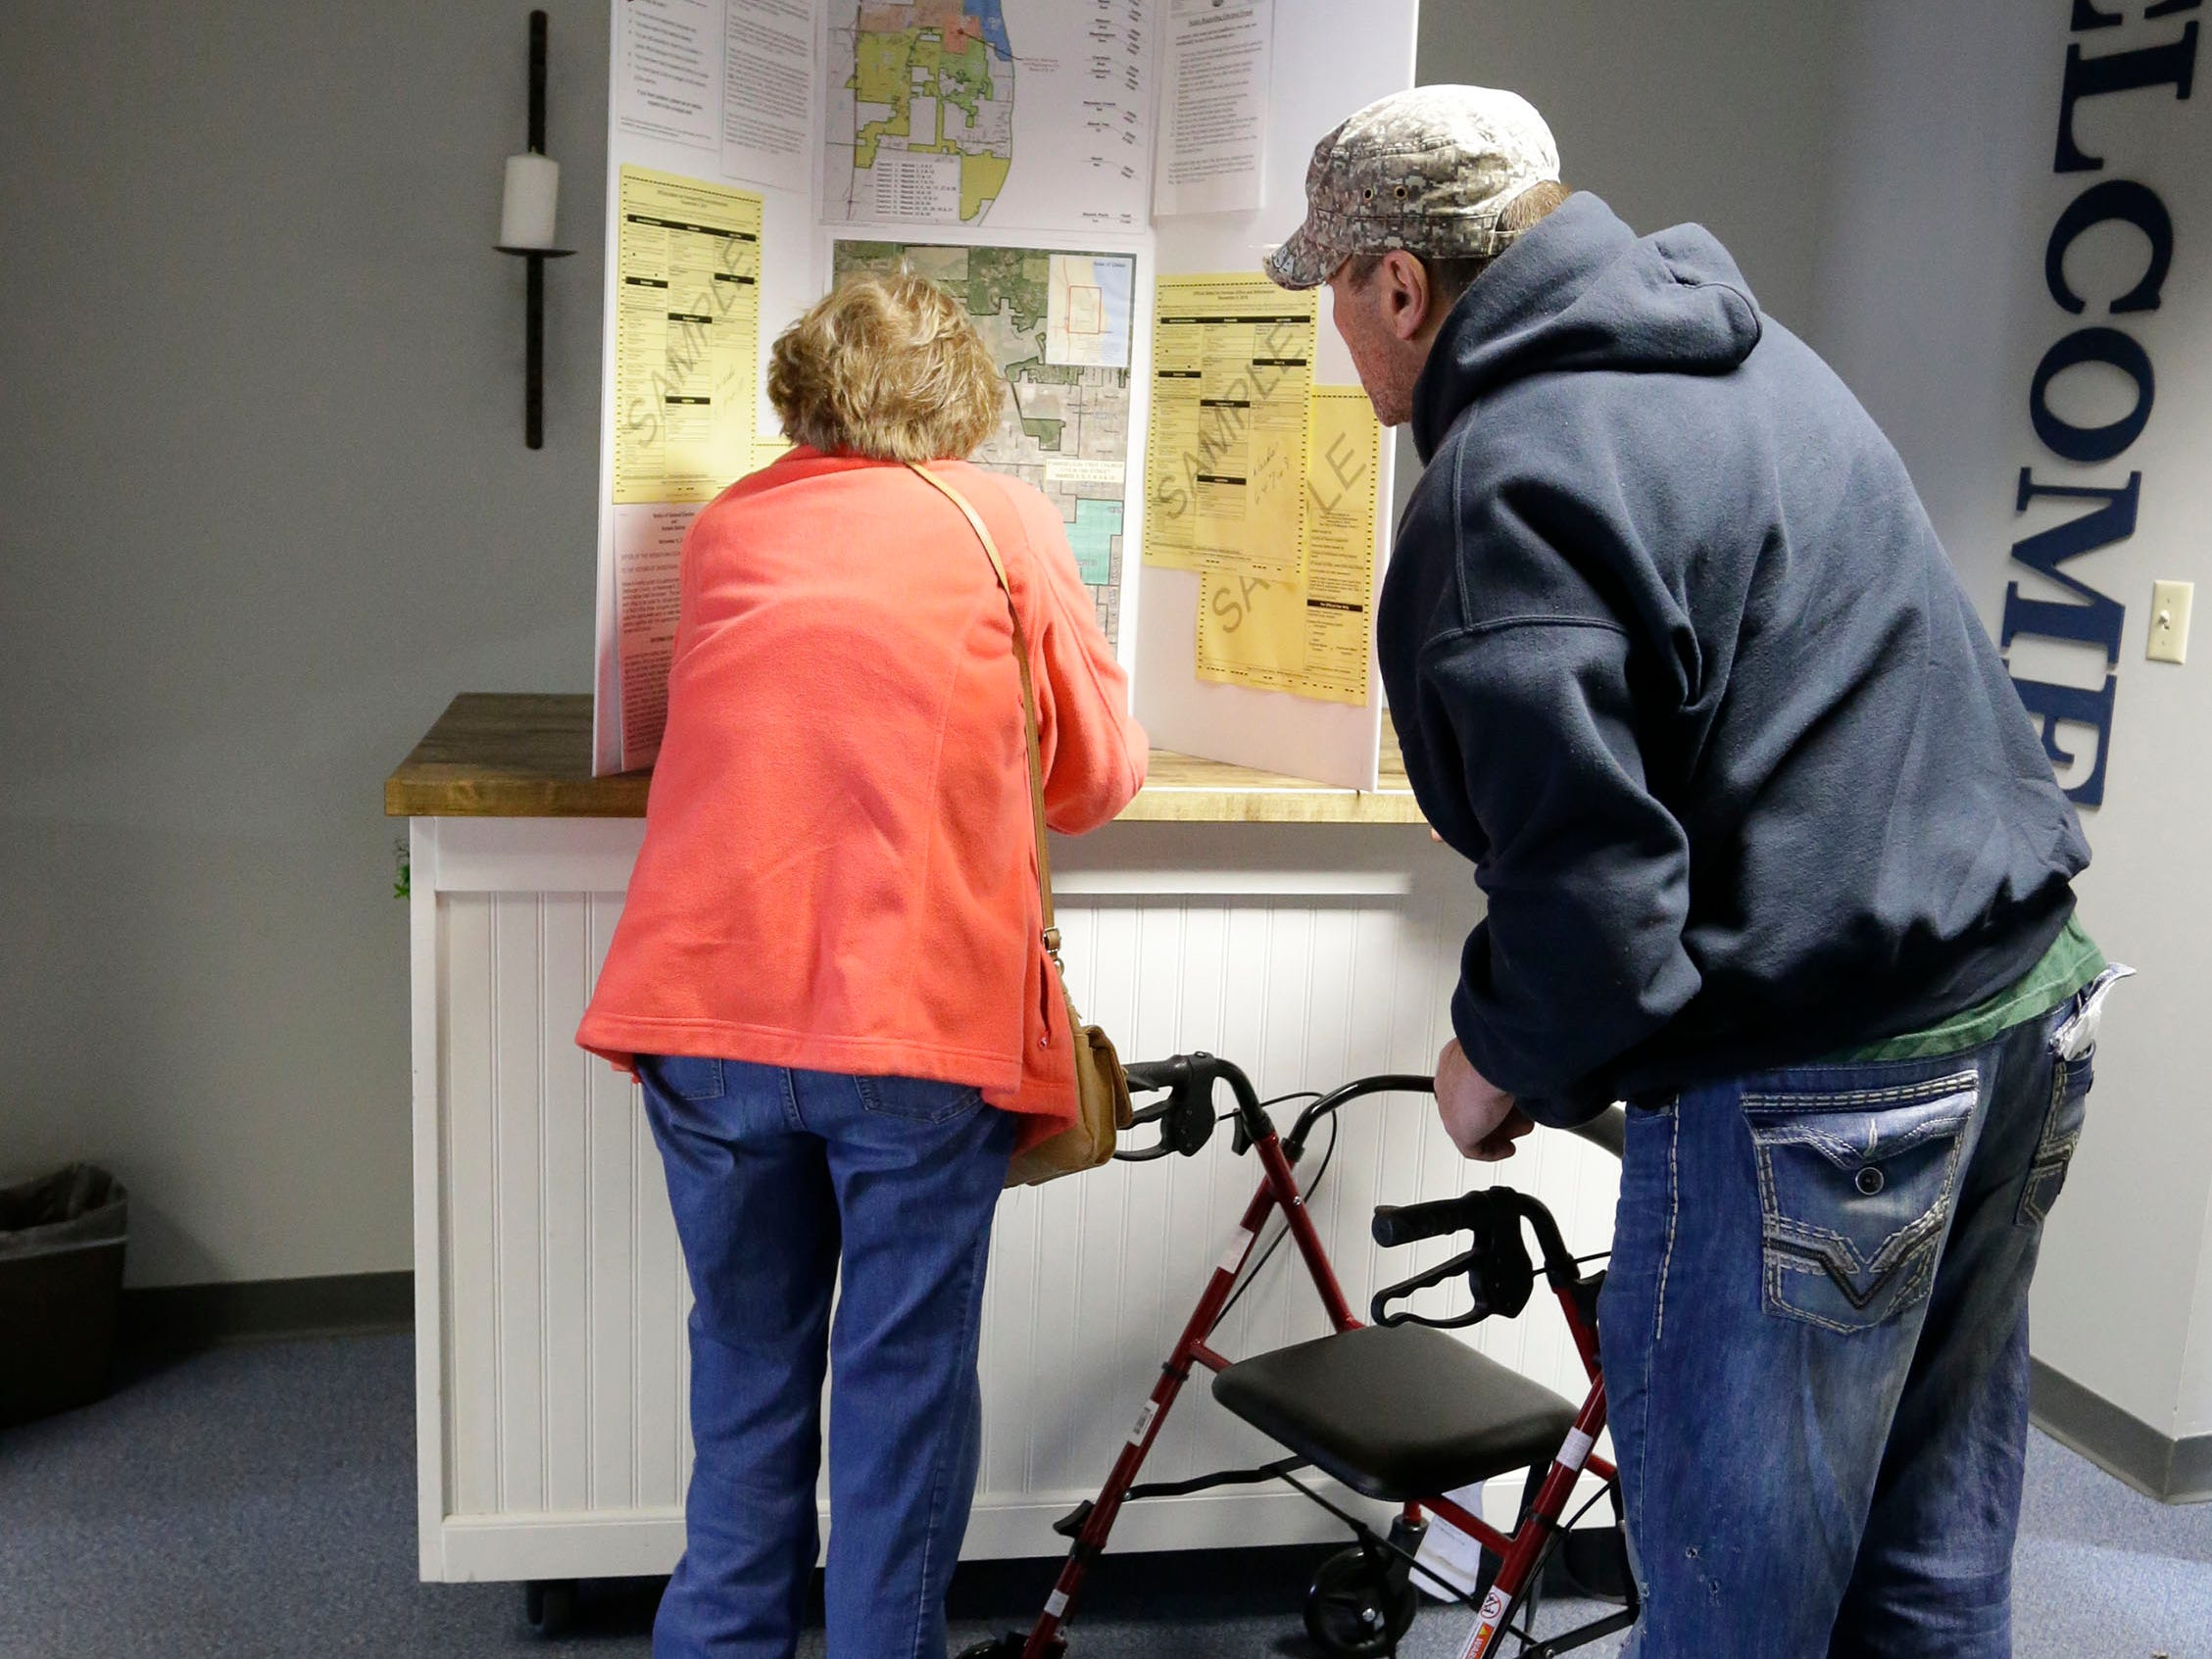 Voters inspect a ward map at Evangelical Free Church polls, Tuesday, November 6, 2018, in Sheboygan, Wis.